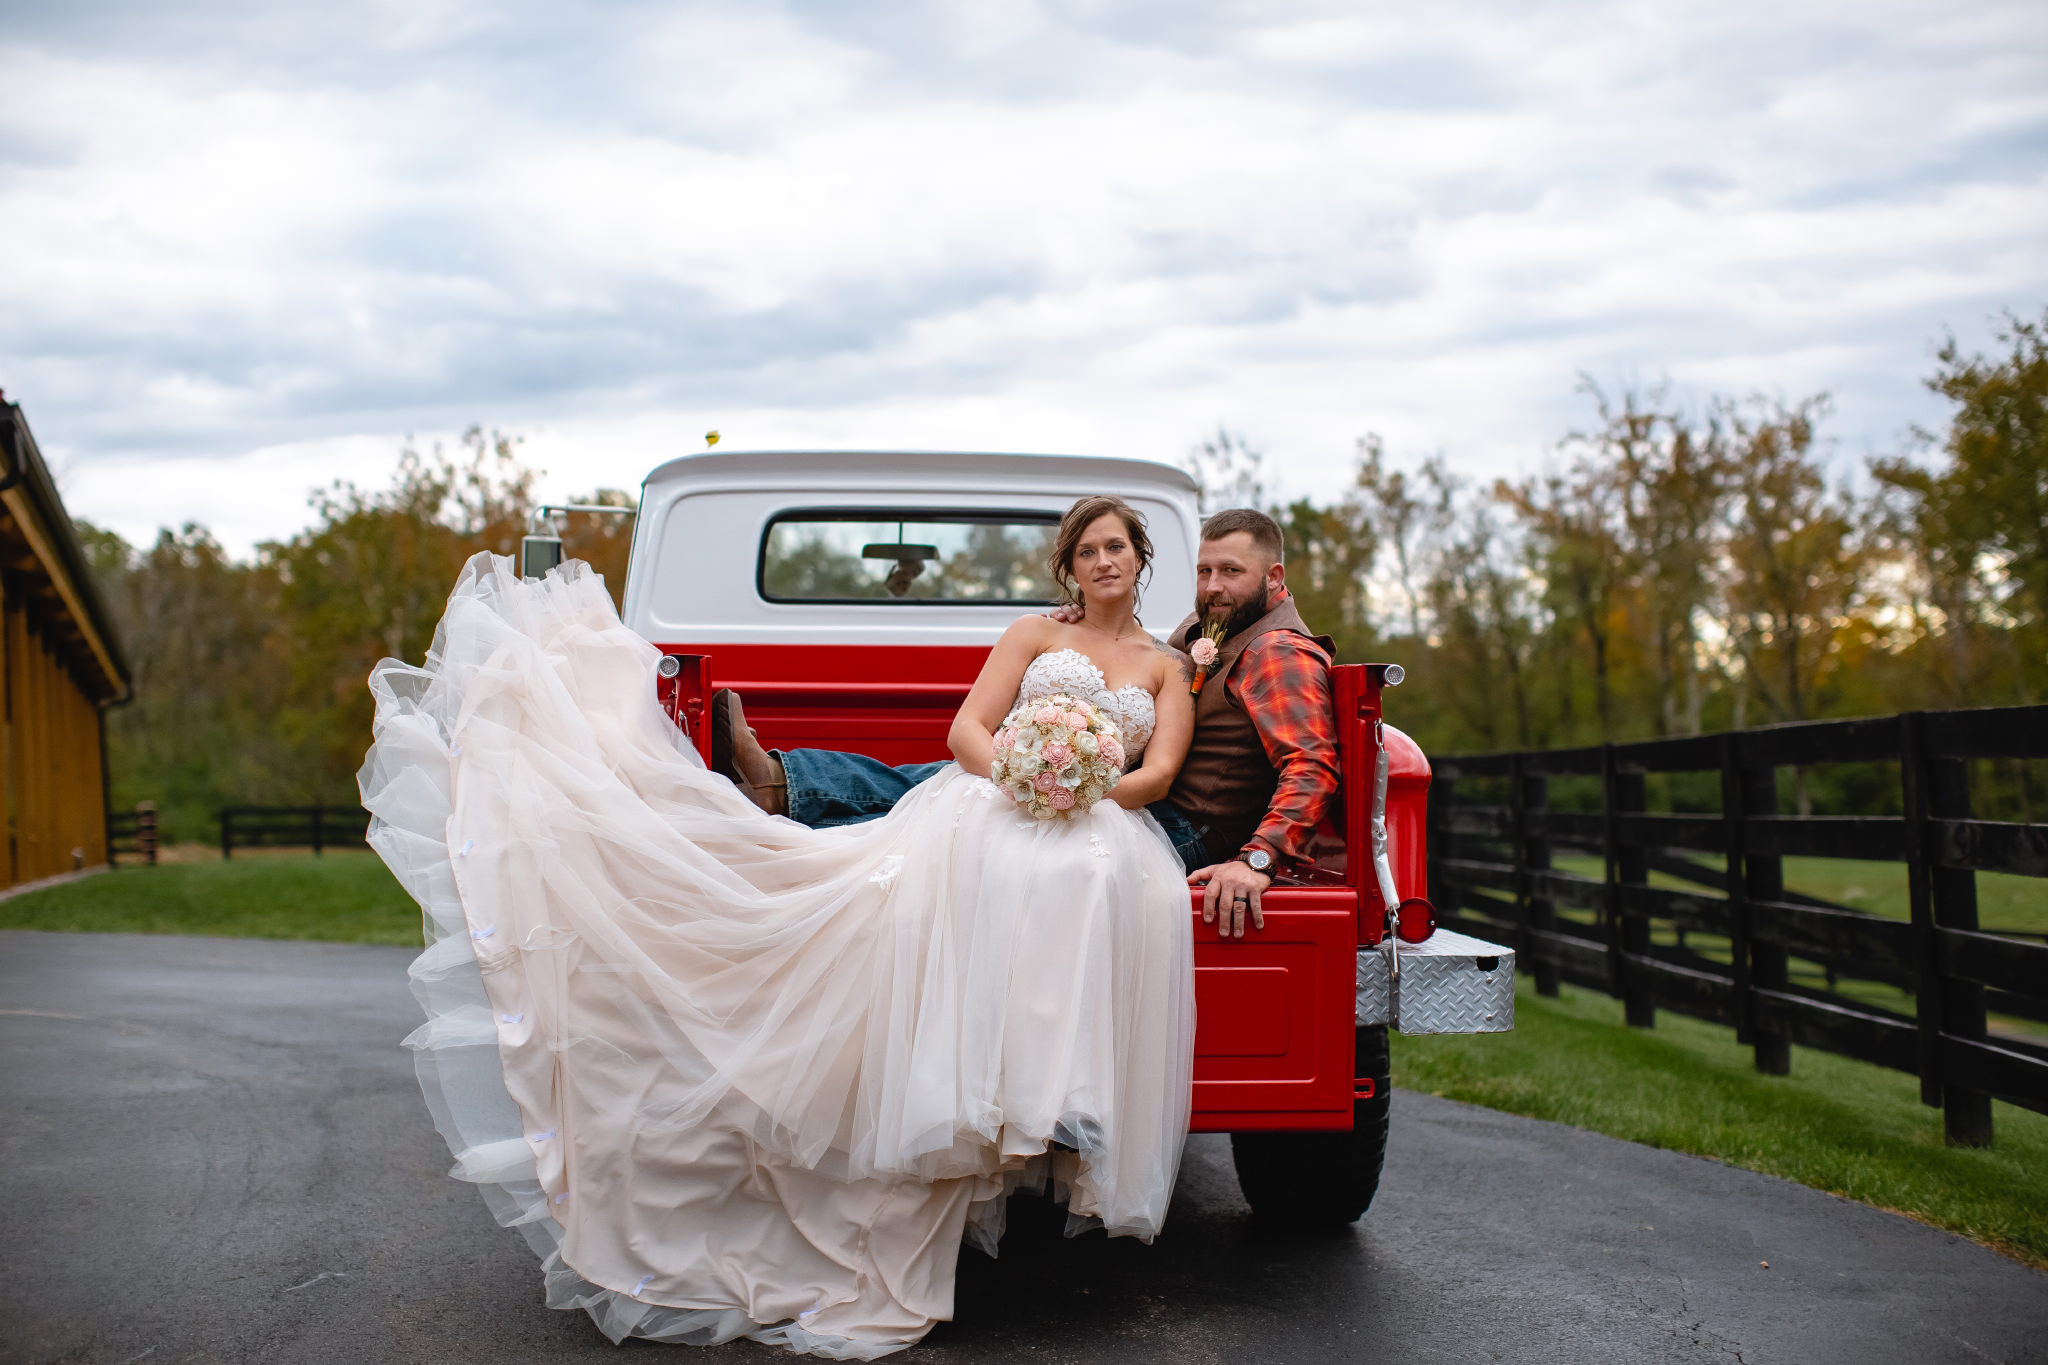 Photographer, Miamisburg, Kettering, Red Truck, Flying Dress, Bride, Groom